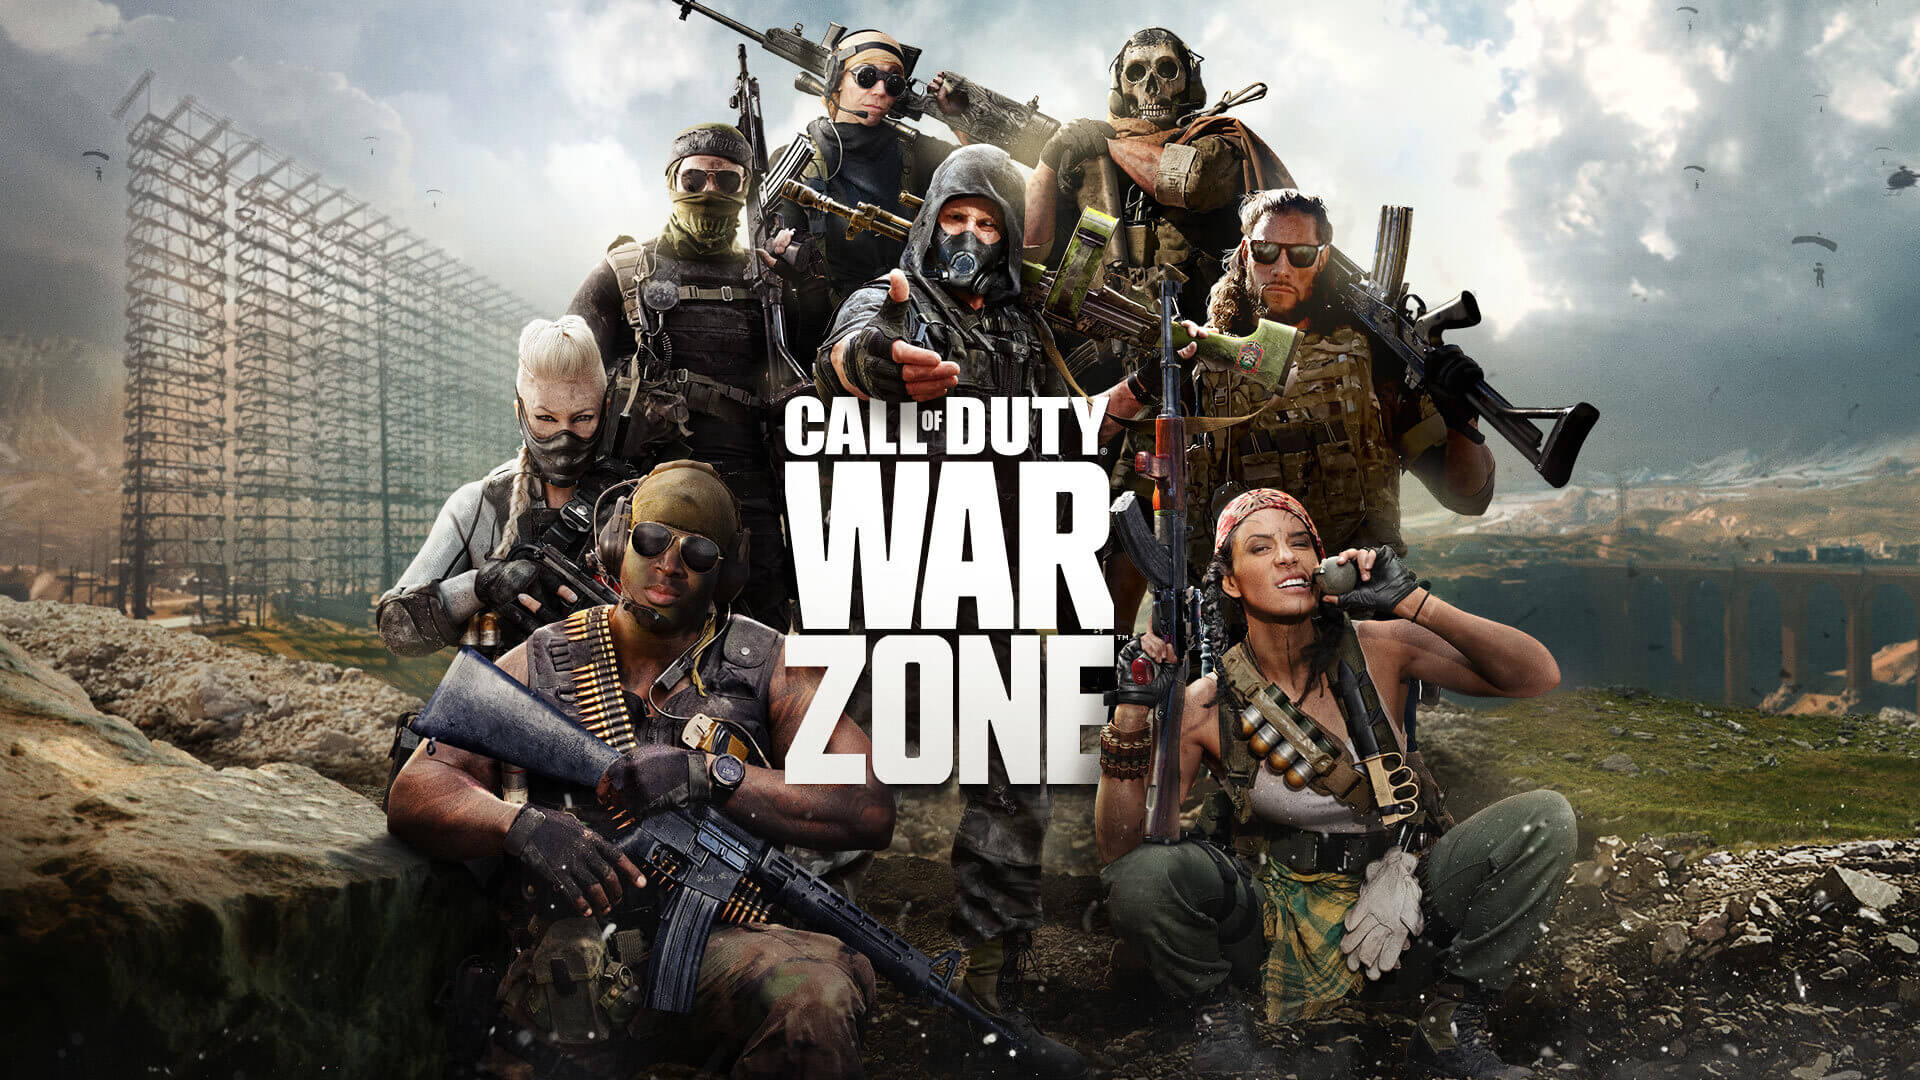 Toys for Bob Now Supporting Development of Call of Duty: Warzone